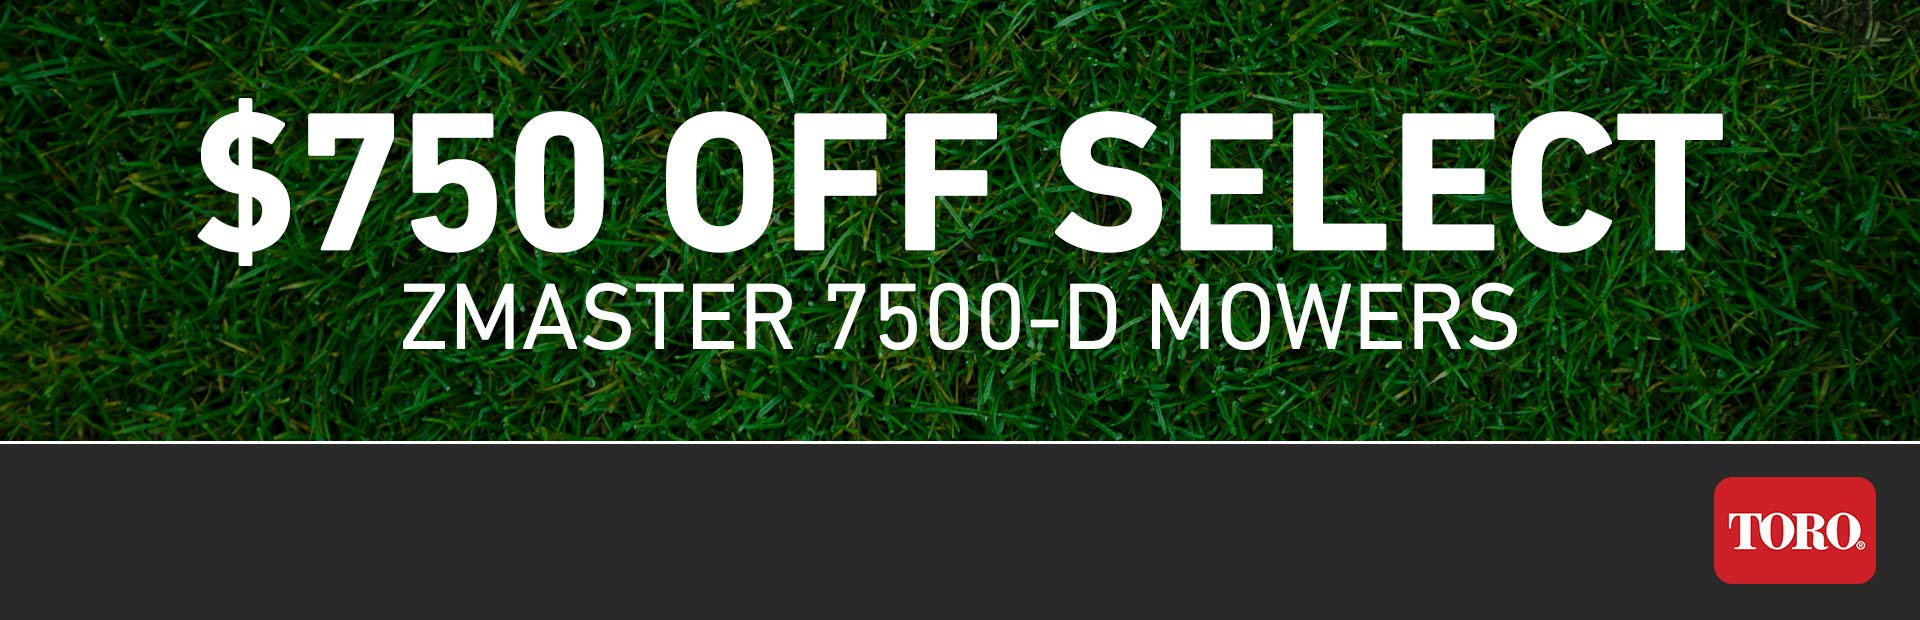 Toro: $750 Off Select ZMaster 7500-D Mowers